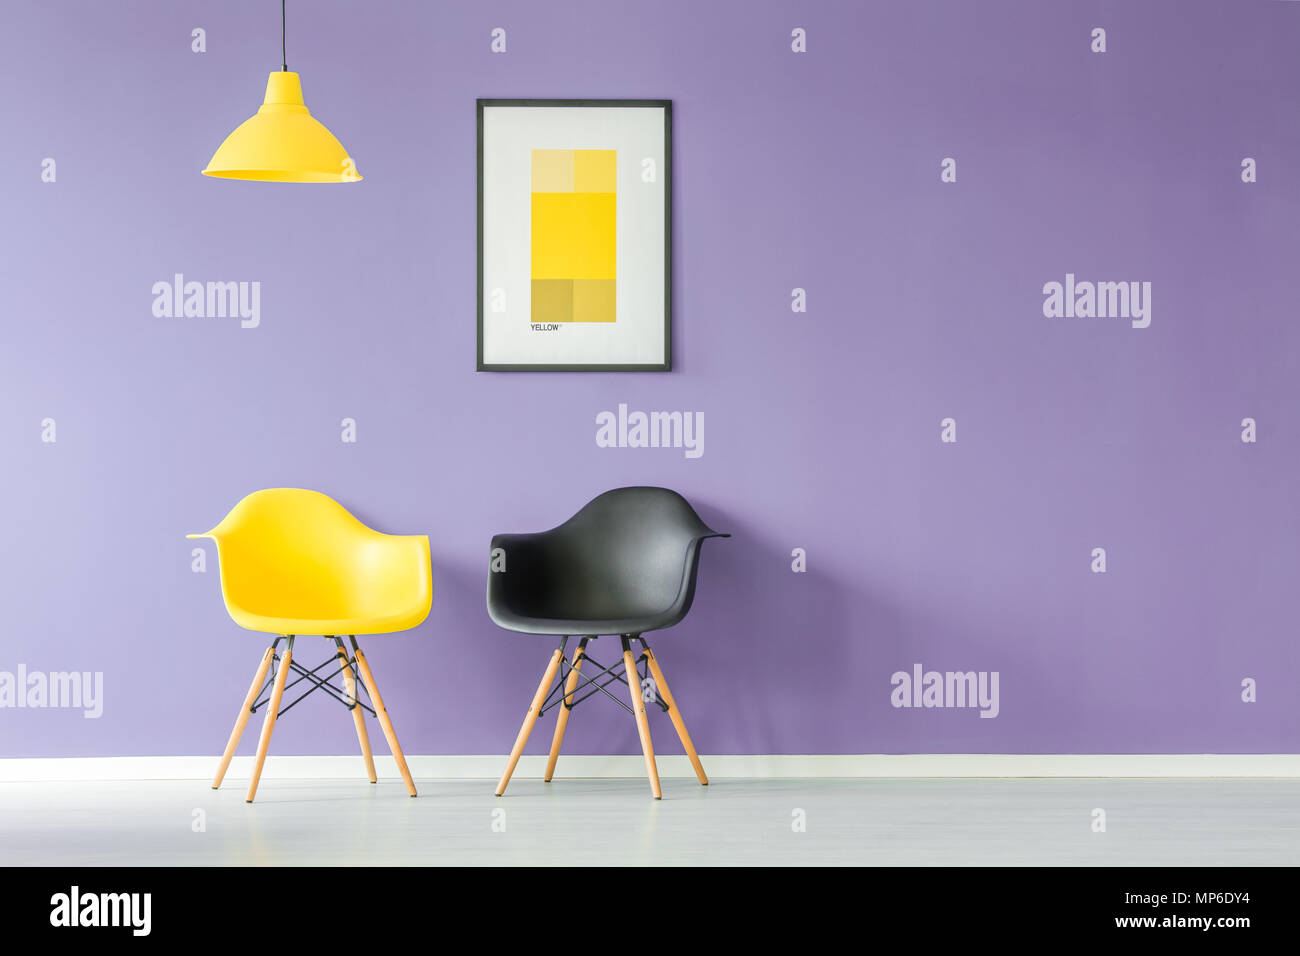 Front view of contrasting color, yellow and black chairs and a yellow lamp against purple background wall with a poster in a minimal living room inter - Stock Image